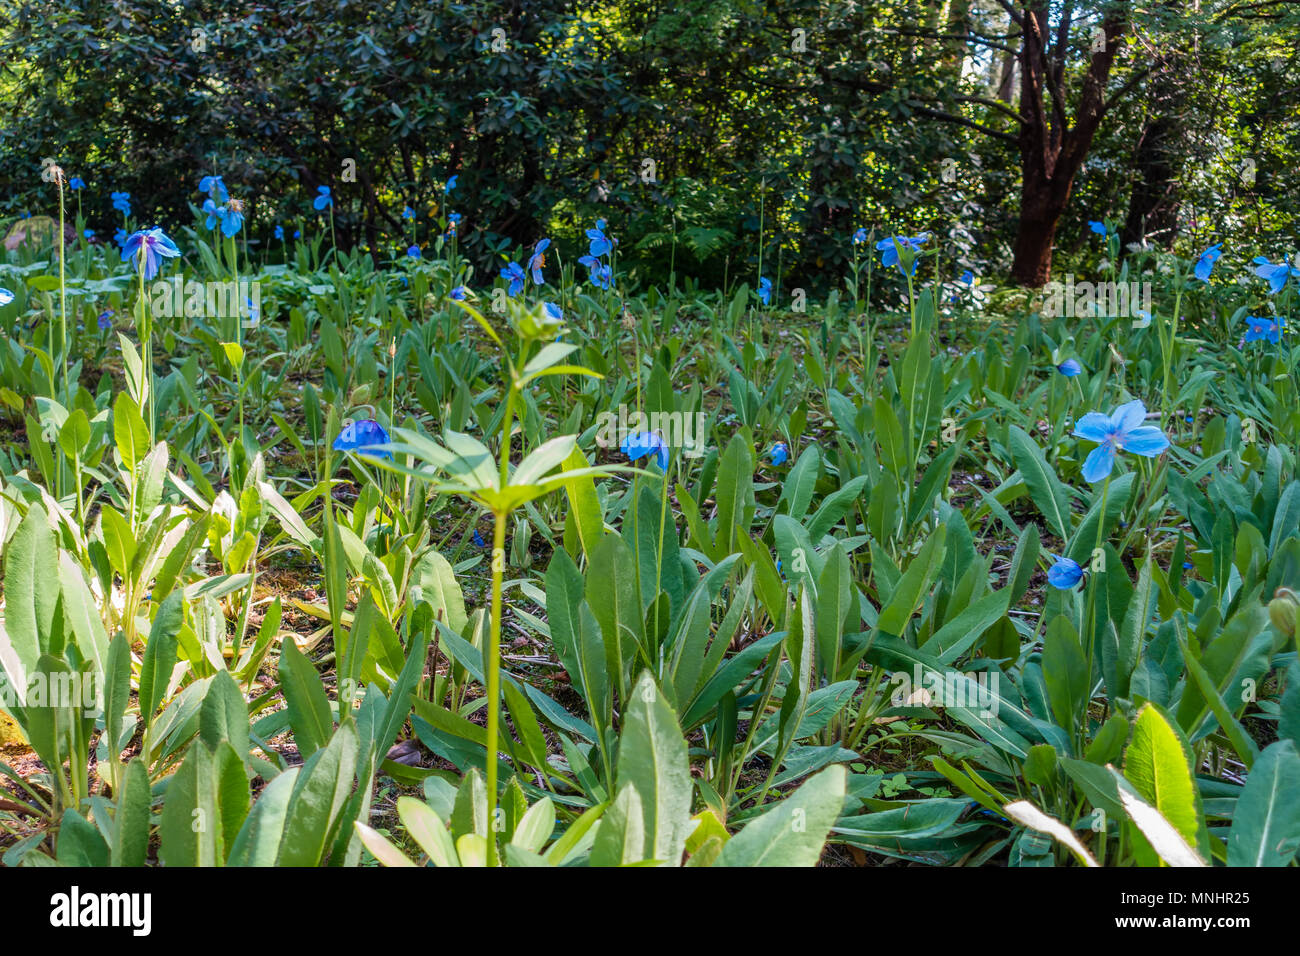 a view of a field of blue flowers in federal way washington stock